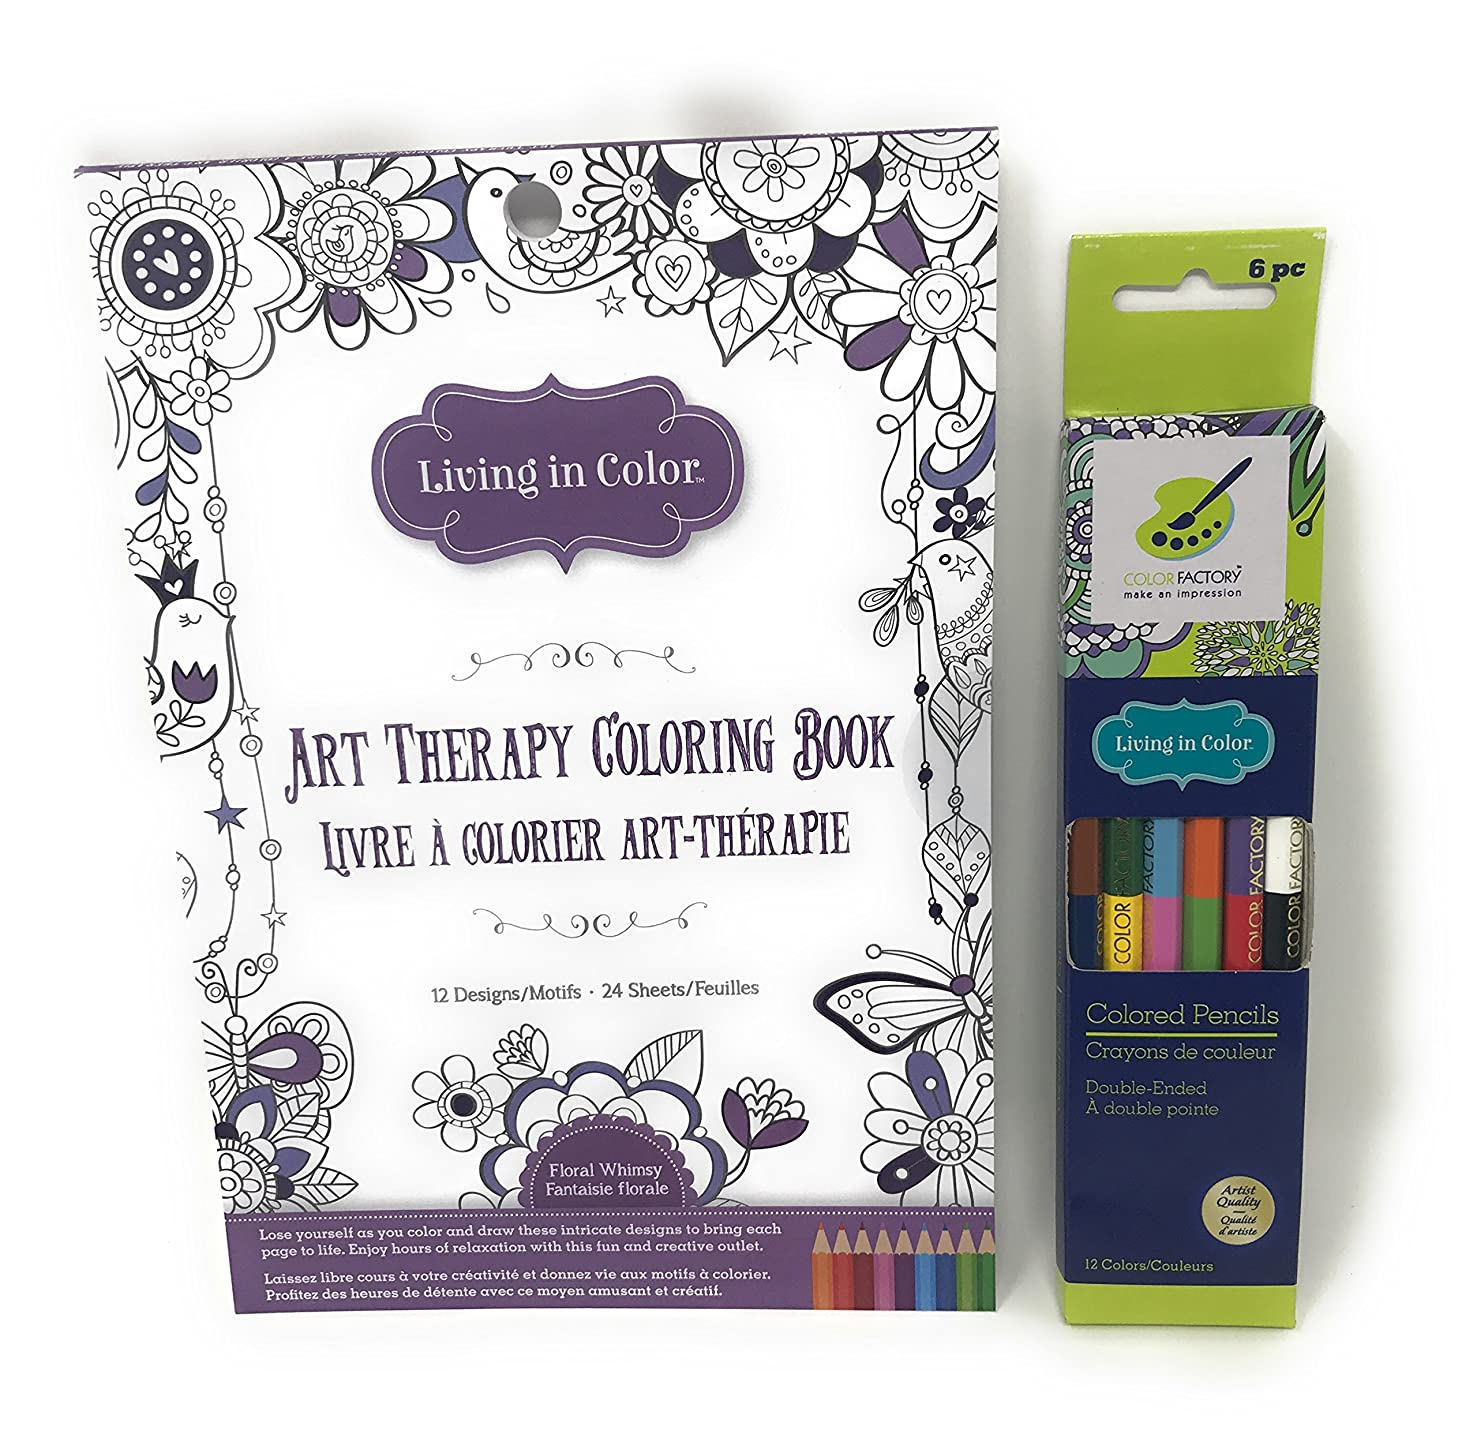 Living in Color Floral Whimsy Art Therapy Coloring Book and 12 Colors - Colored Pencils Double-Ended Bundle